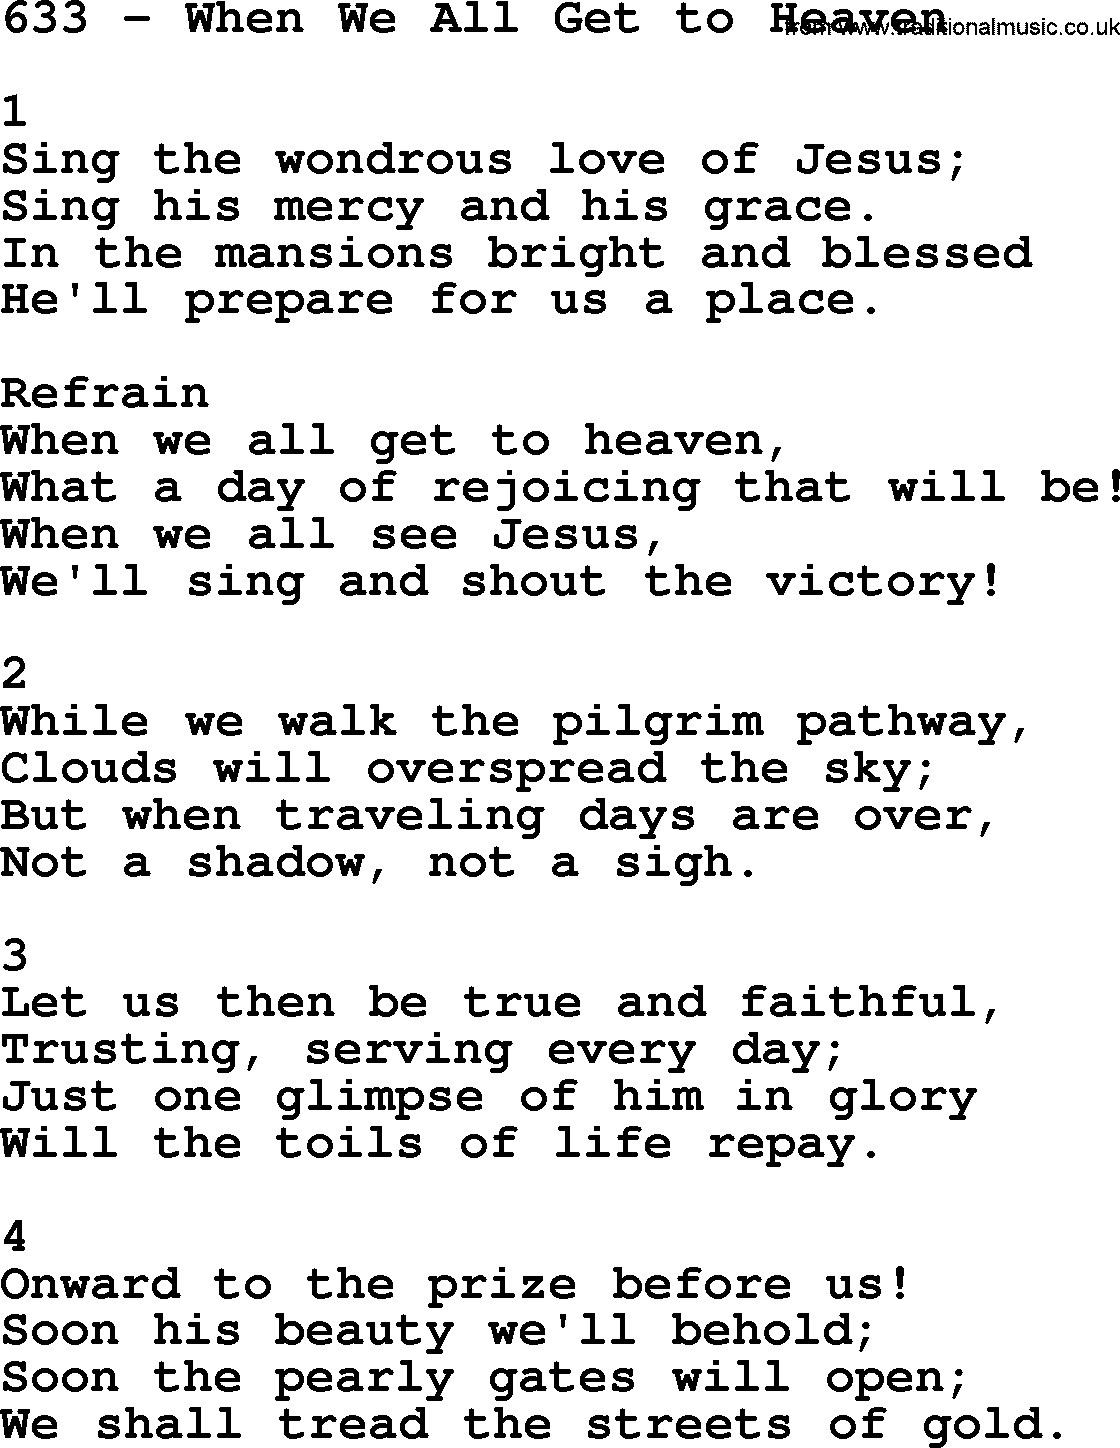 Adventist Hymnal Song 633 When We All Get To Heaven With Lyrics Ppt Midi Mp3 And Pdf